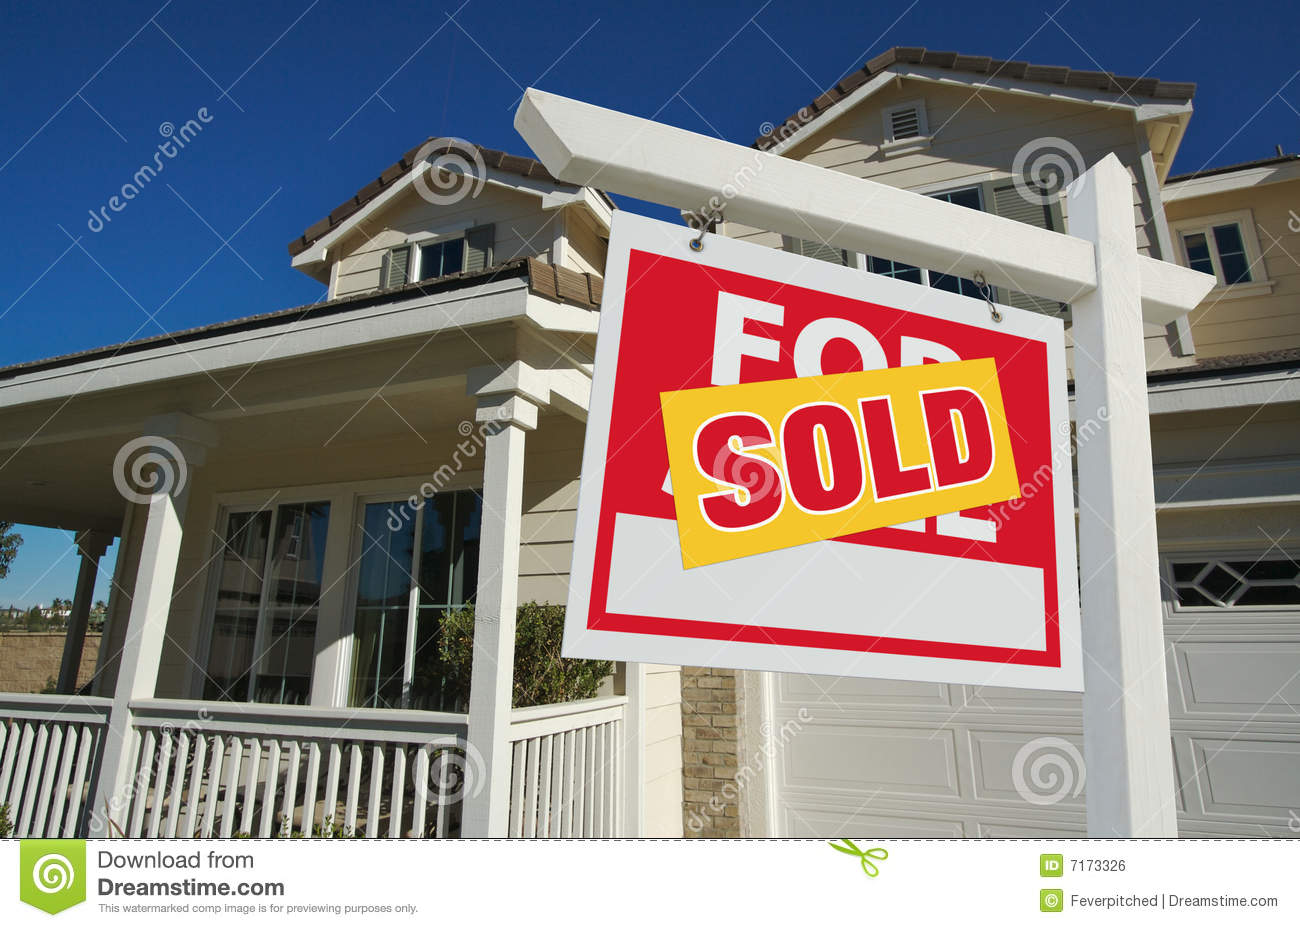 Sold home for sale sign new home royalty free stock for New home sign